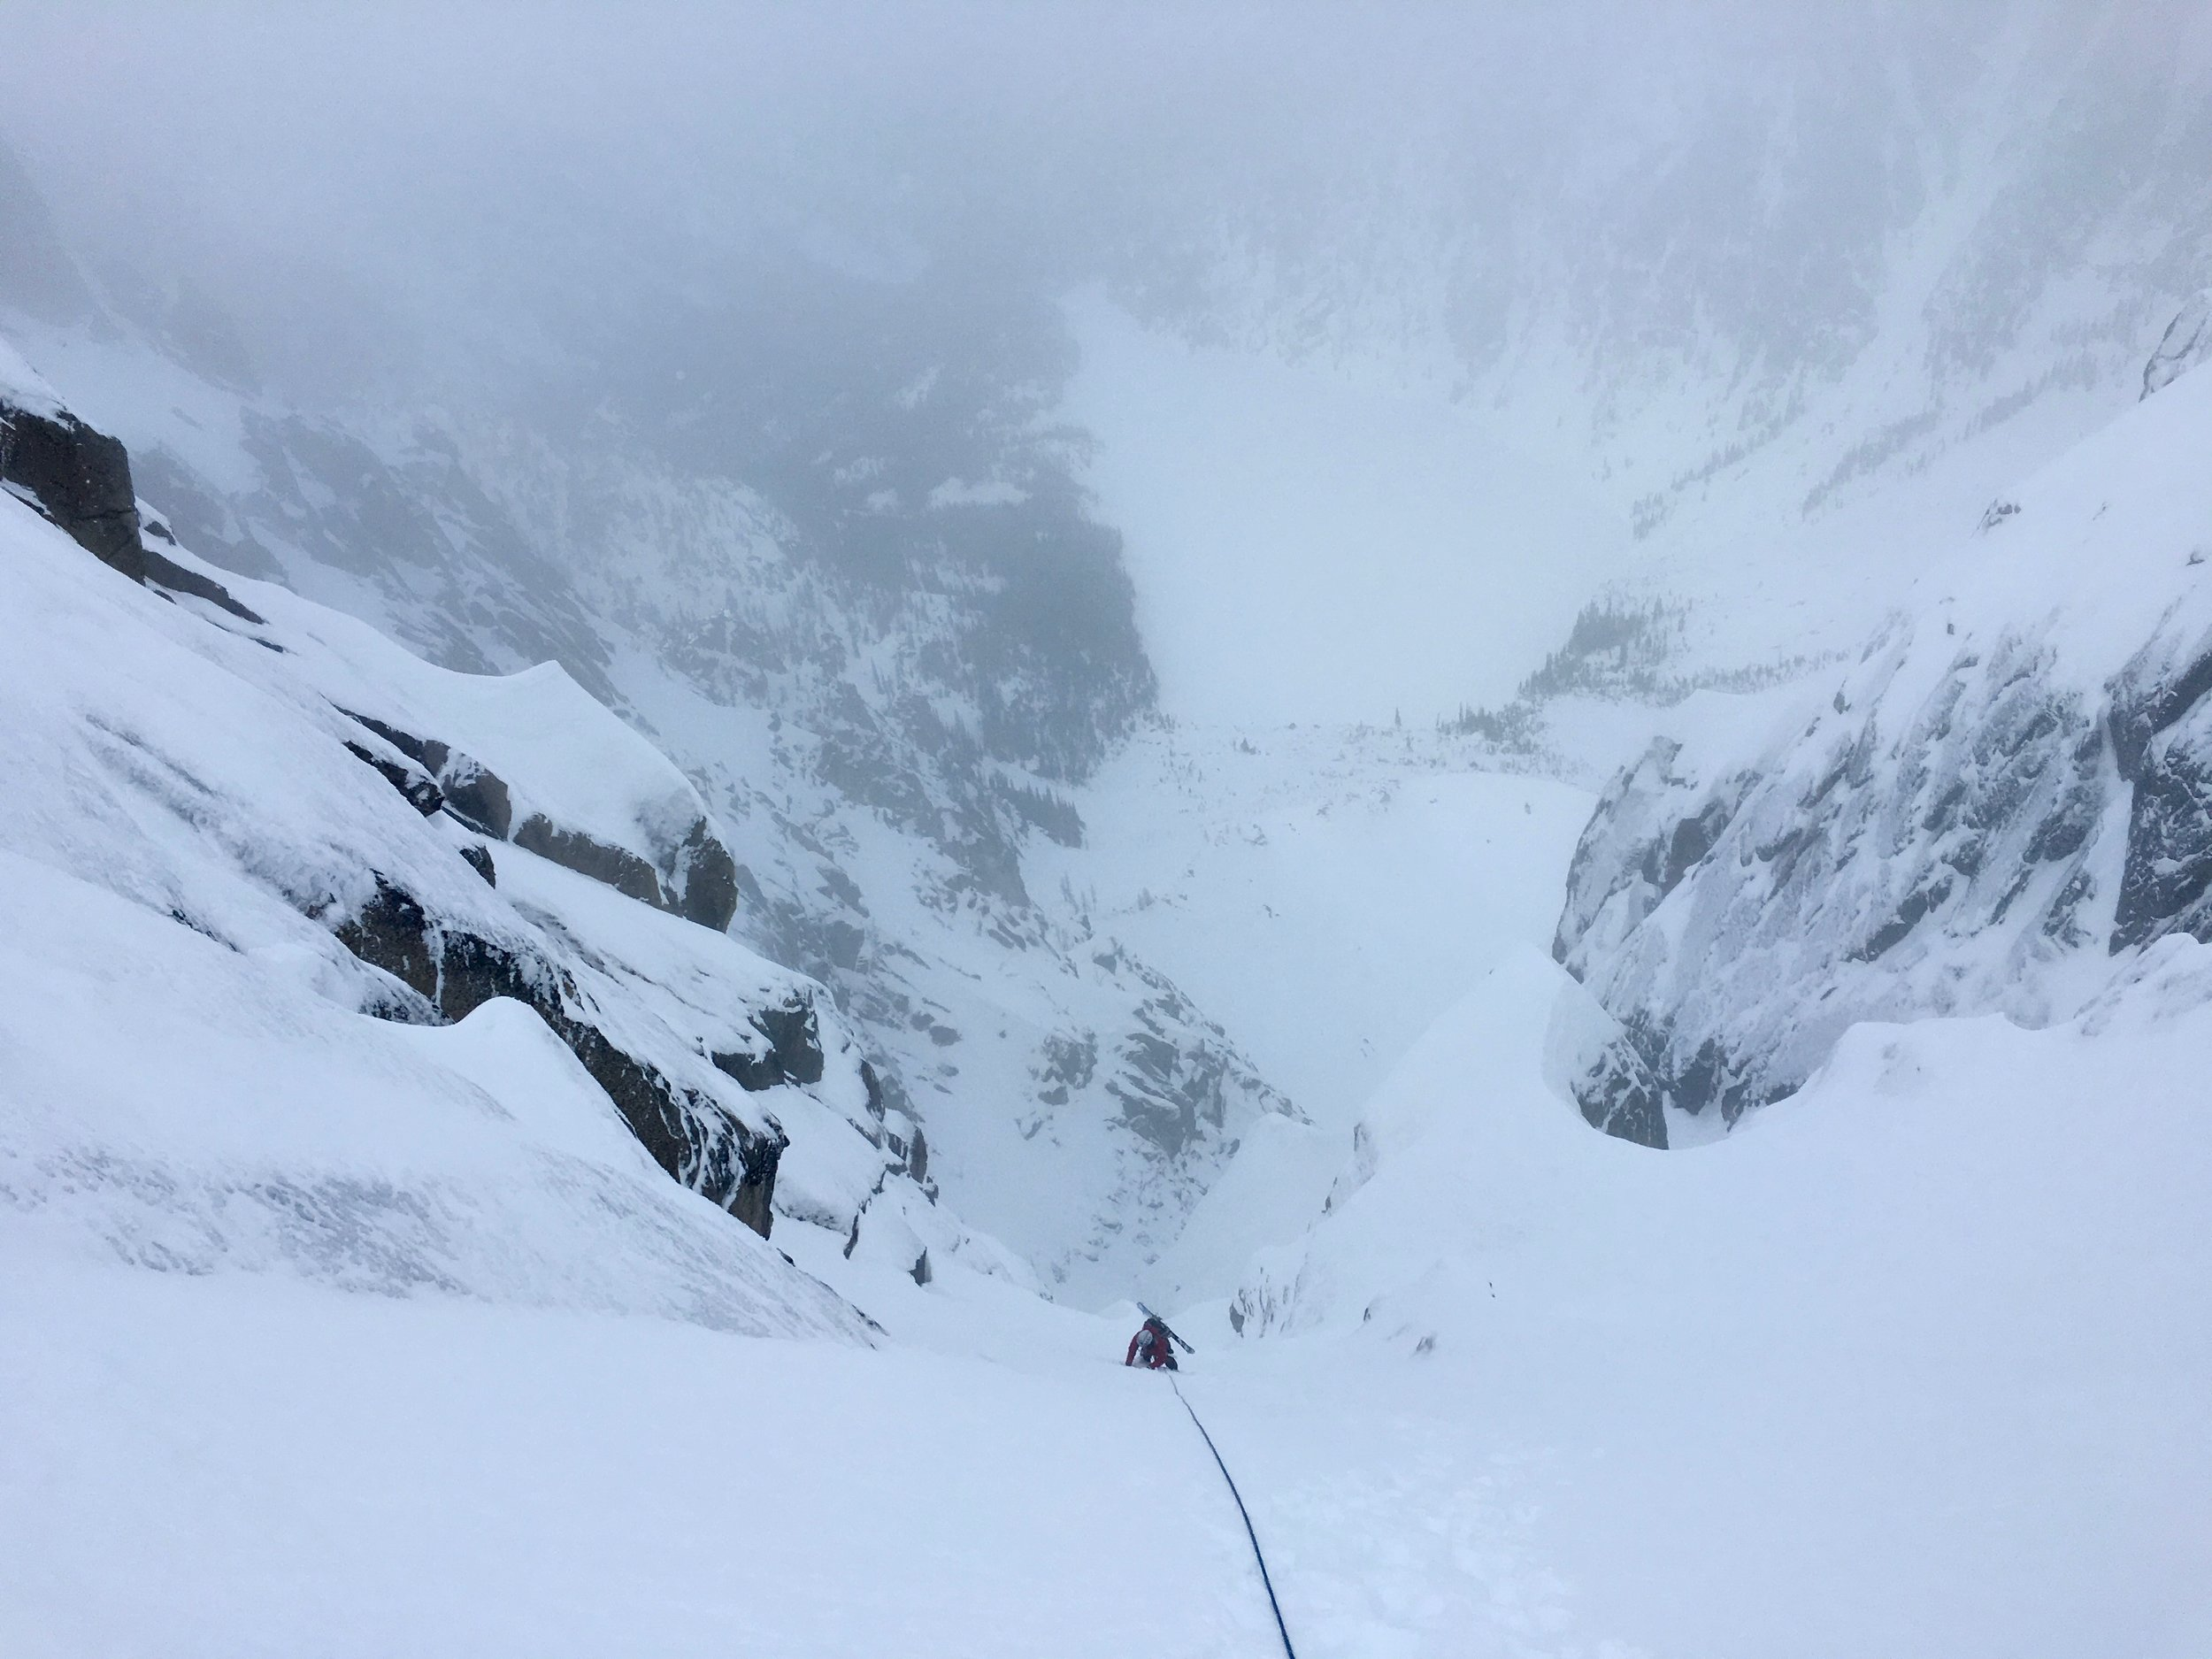 Kelsey on steep snow near the thrilling final pitches